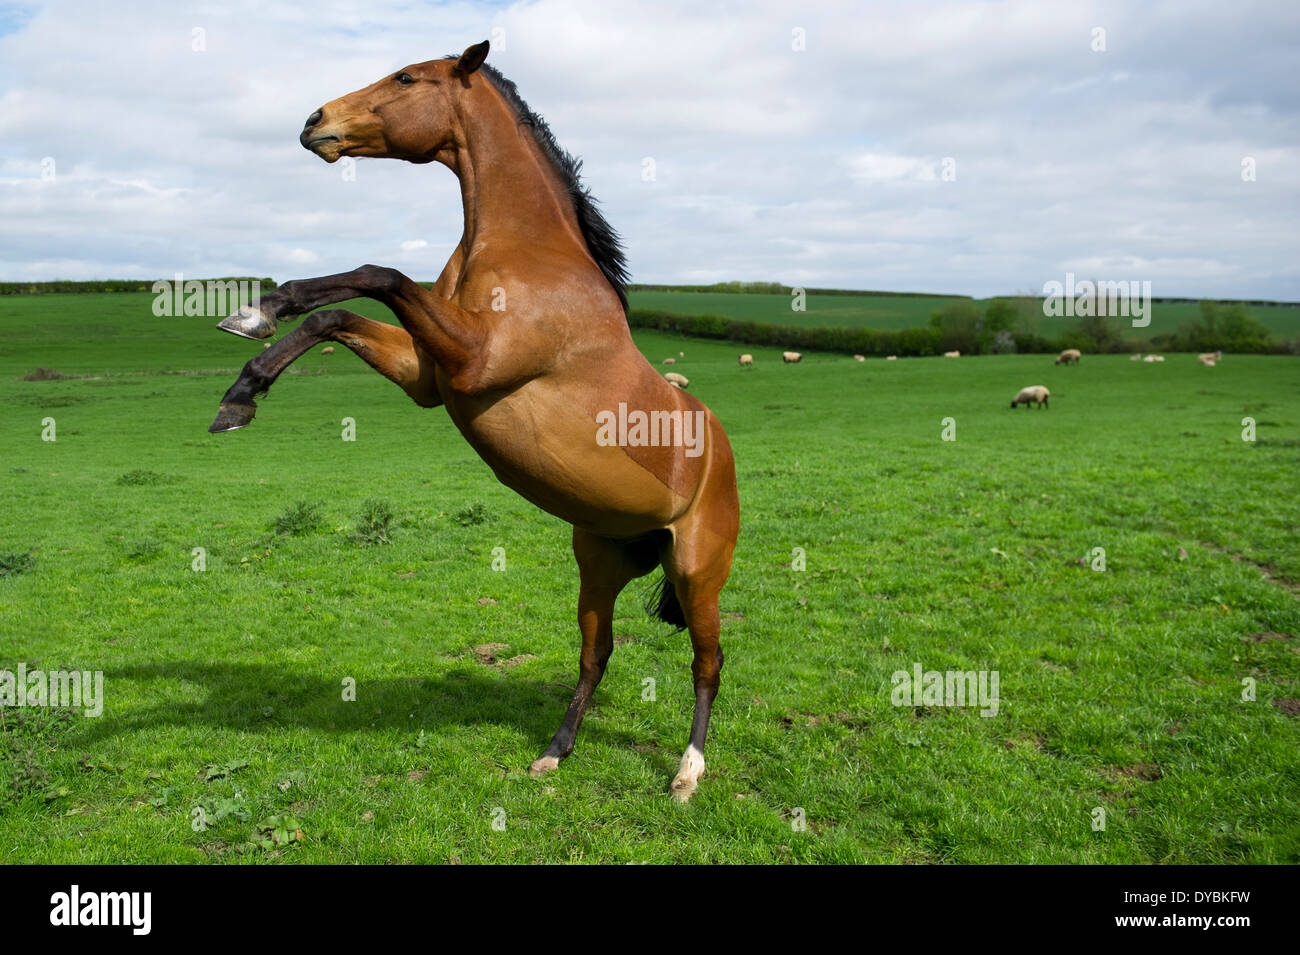 A rearing bay coloured horse in a field of sheep, England. - Stock Image